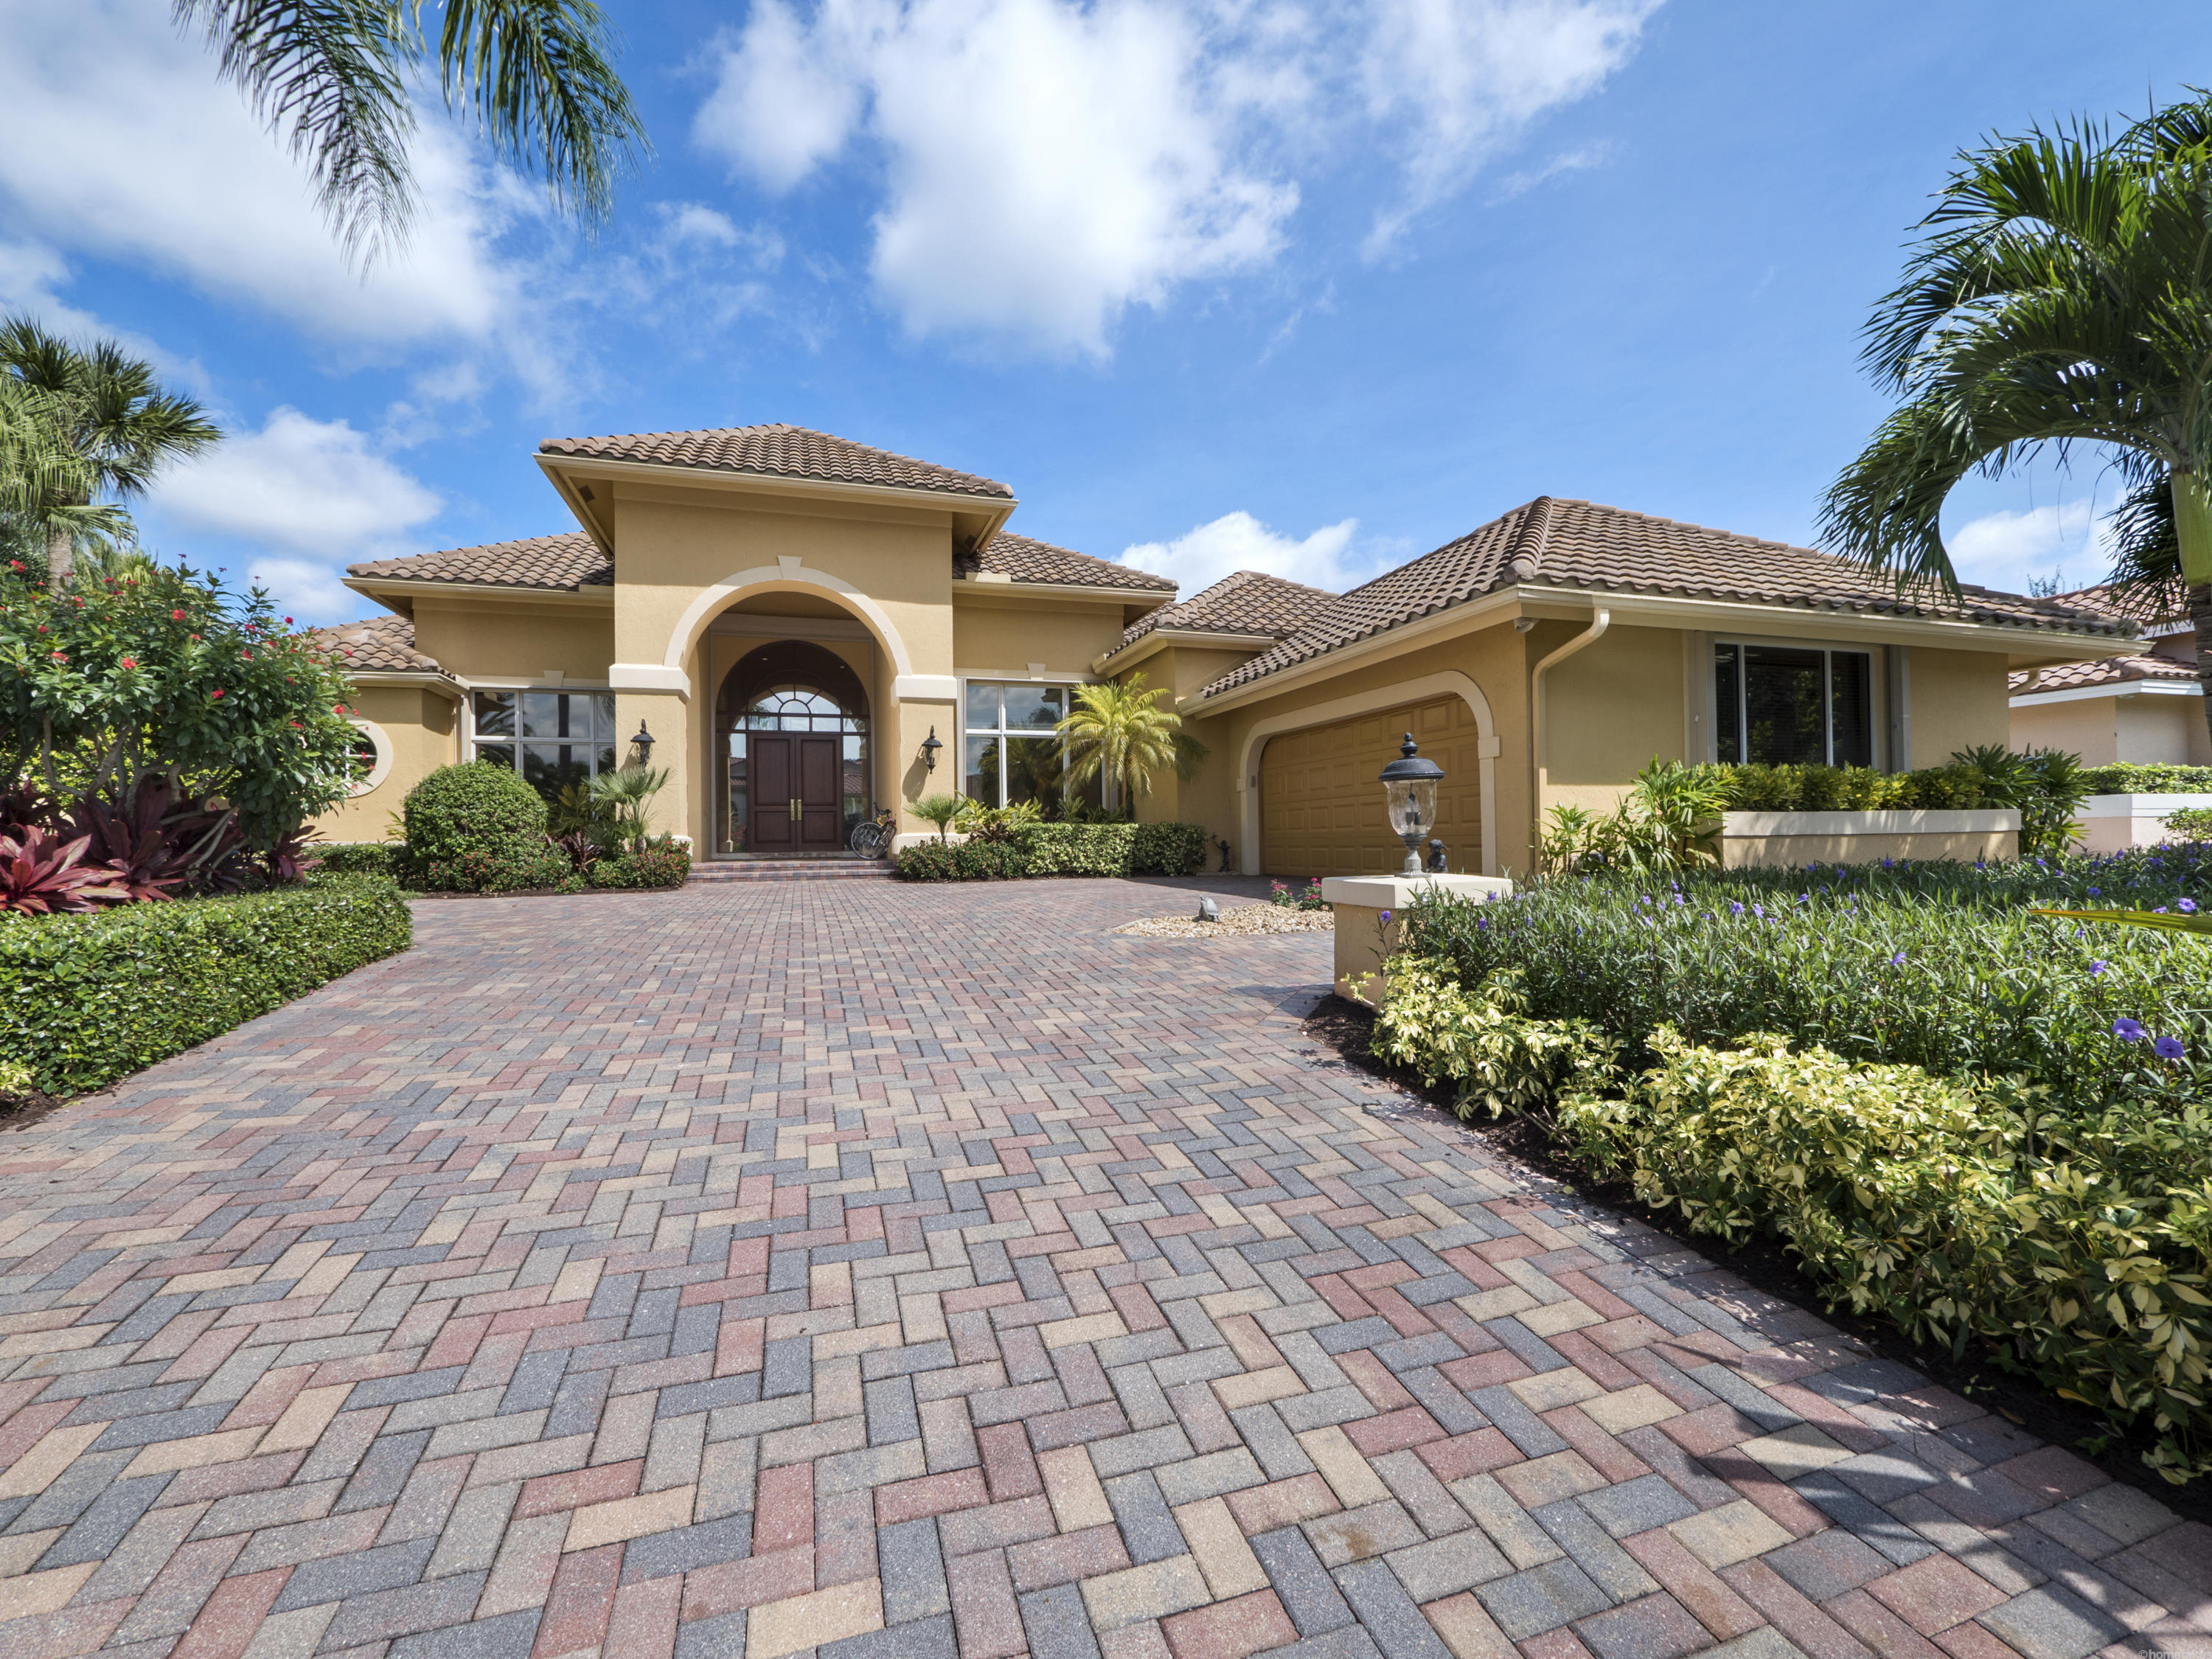 Photo of 3081 Burgundy Drive N, Palm Beach Gardens, FL 33410